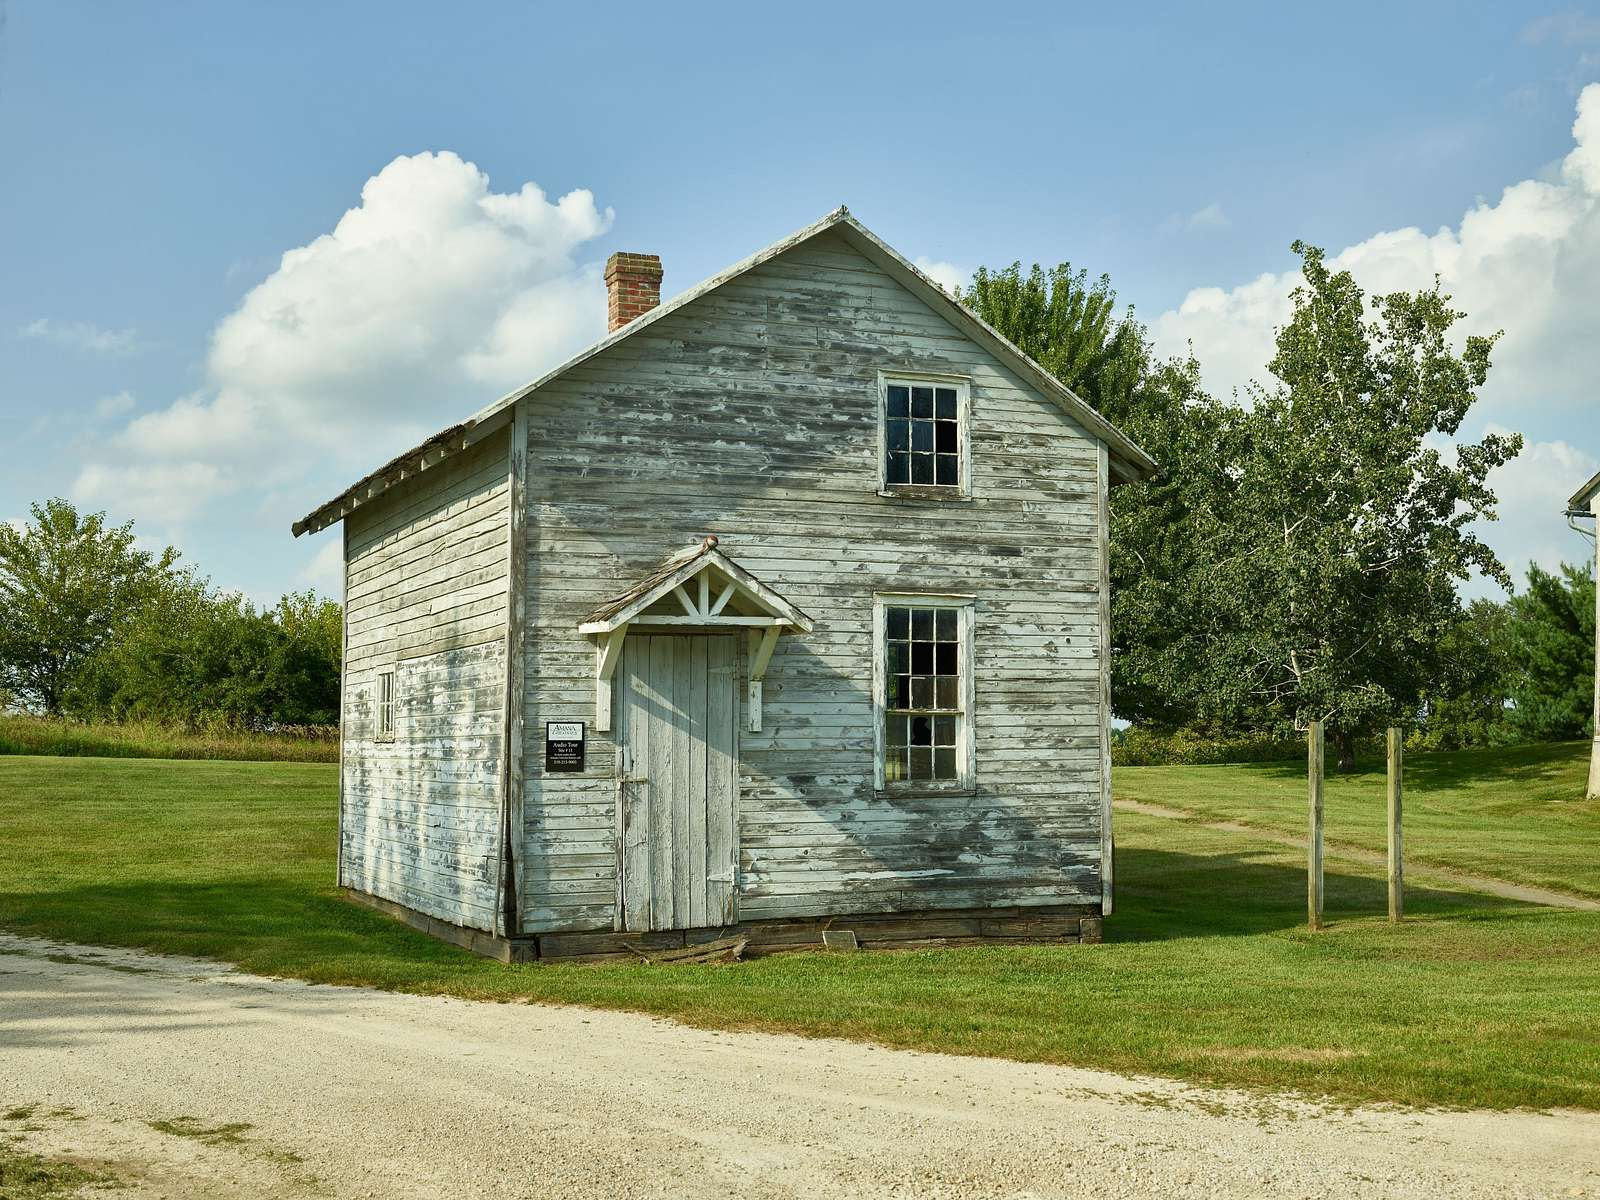 Small storage building in South Amana, one of the Amana Colonies, seven villages in Iowa County, Iowa